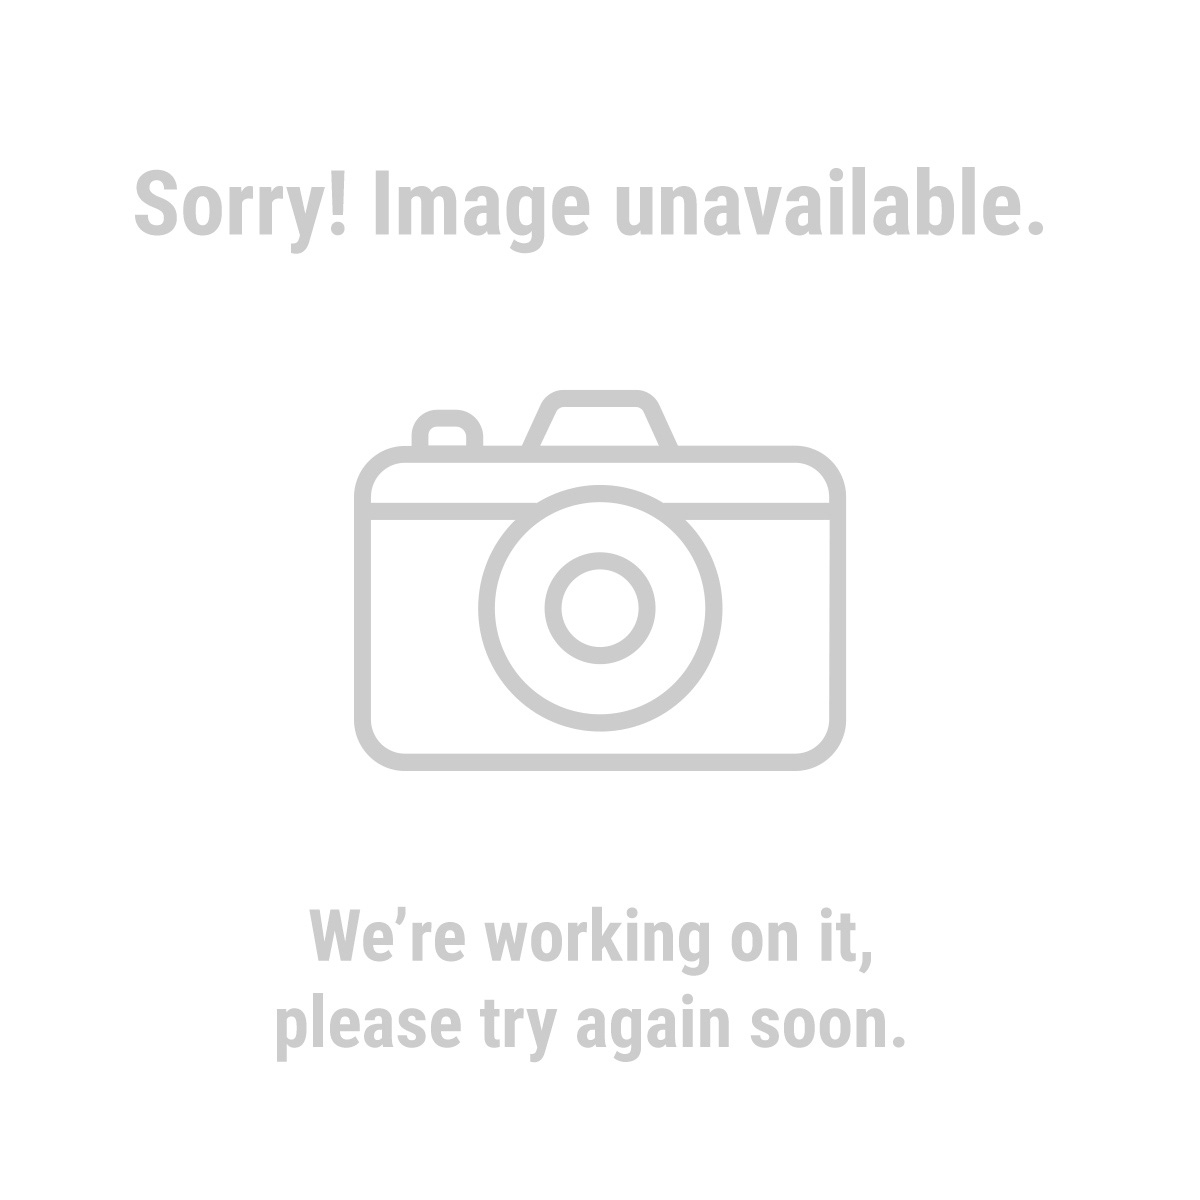 Western Safety 94236 Support Belt with Reflector - XL